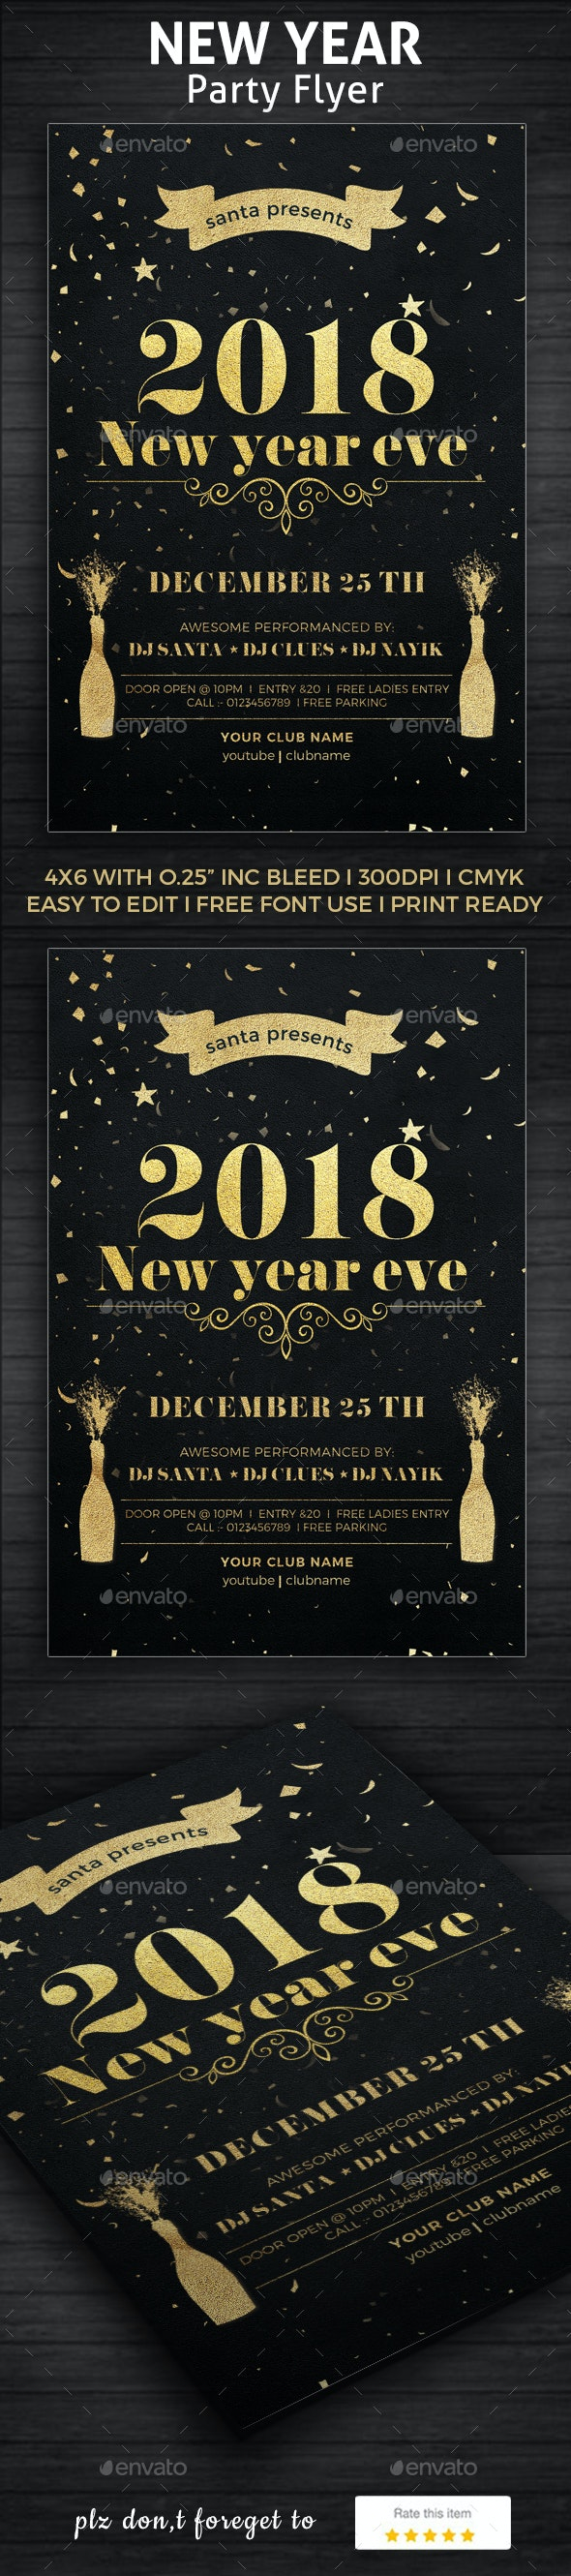 2018 New Year Party Poster - Clubs & Parties Events